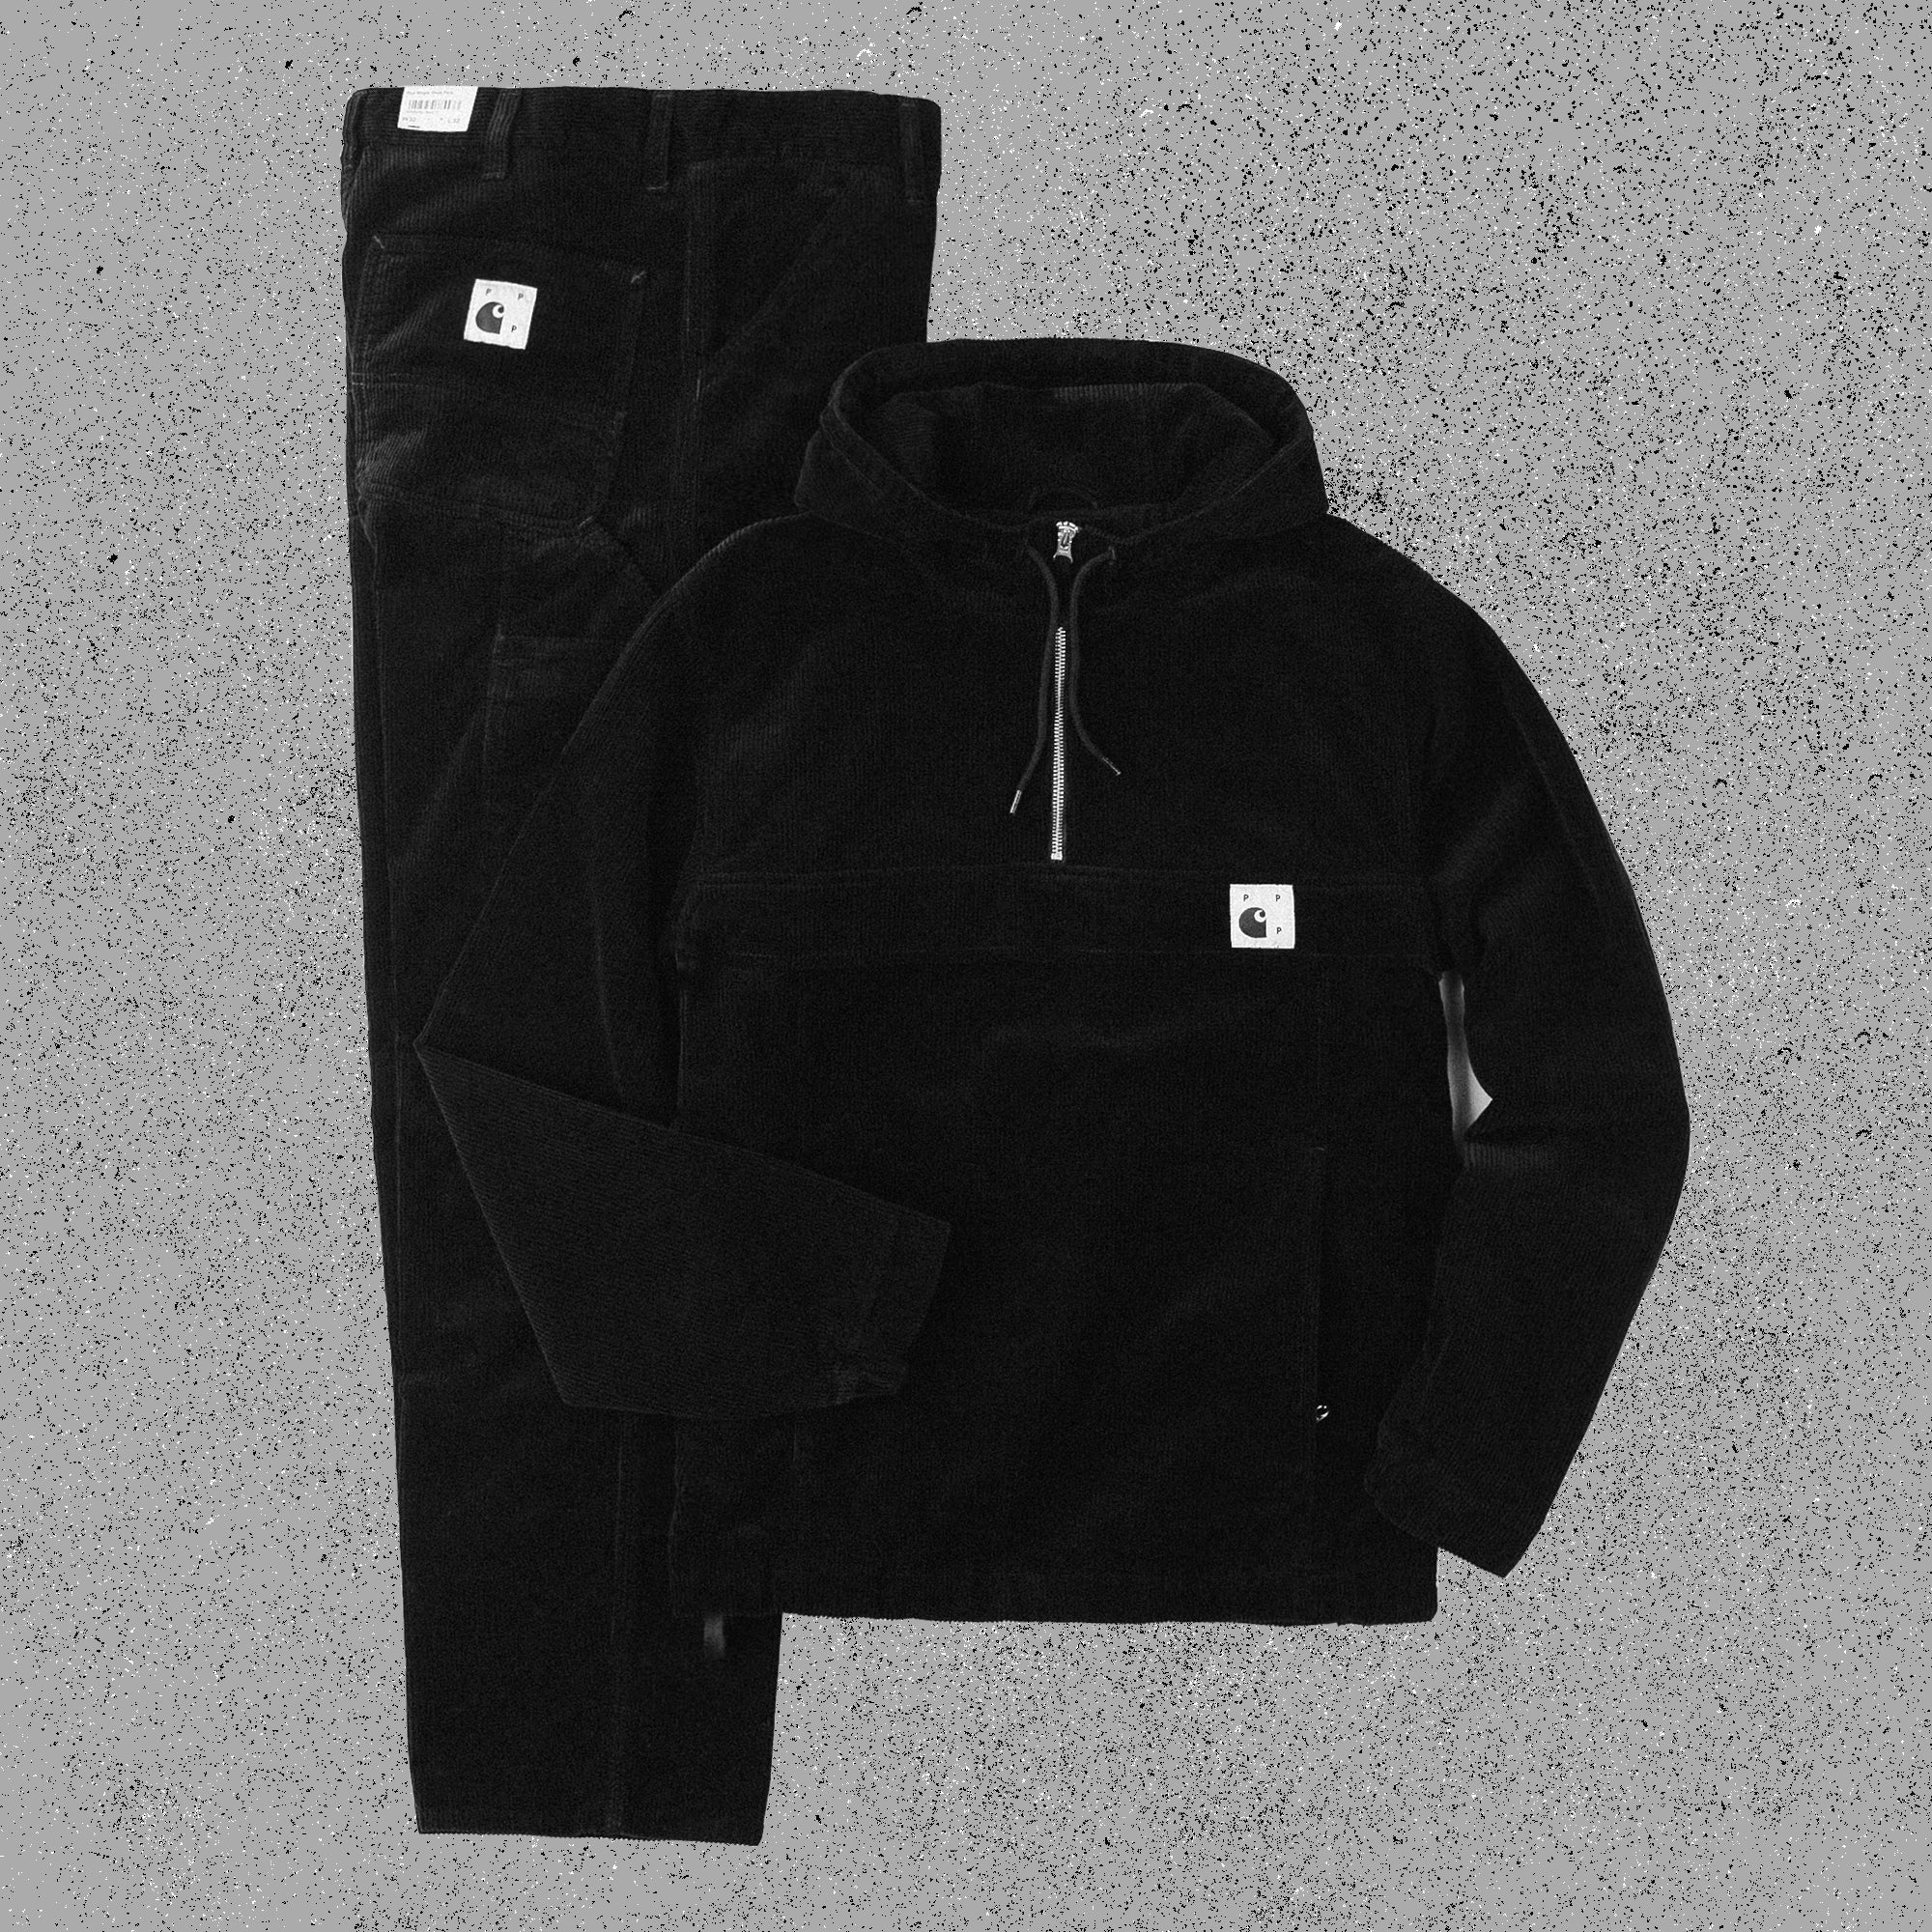 Pop Trading Company x Carhartt: Capsule Collection | Flatspot